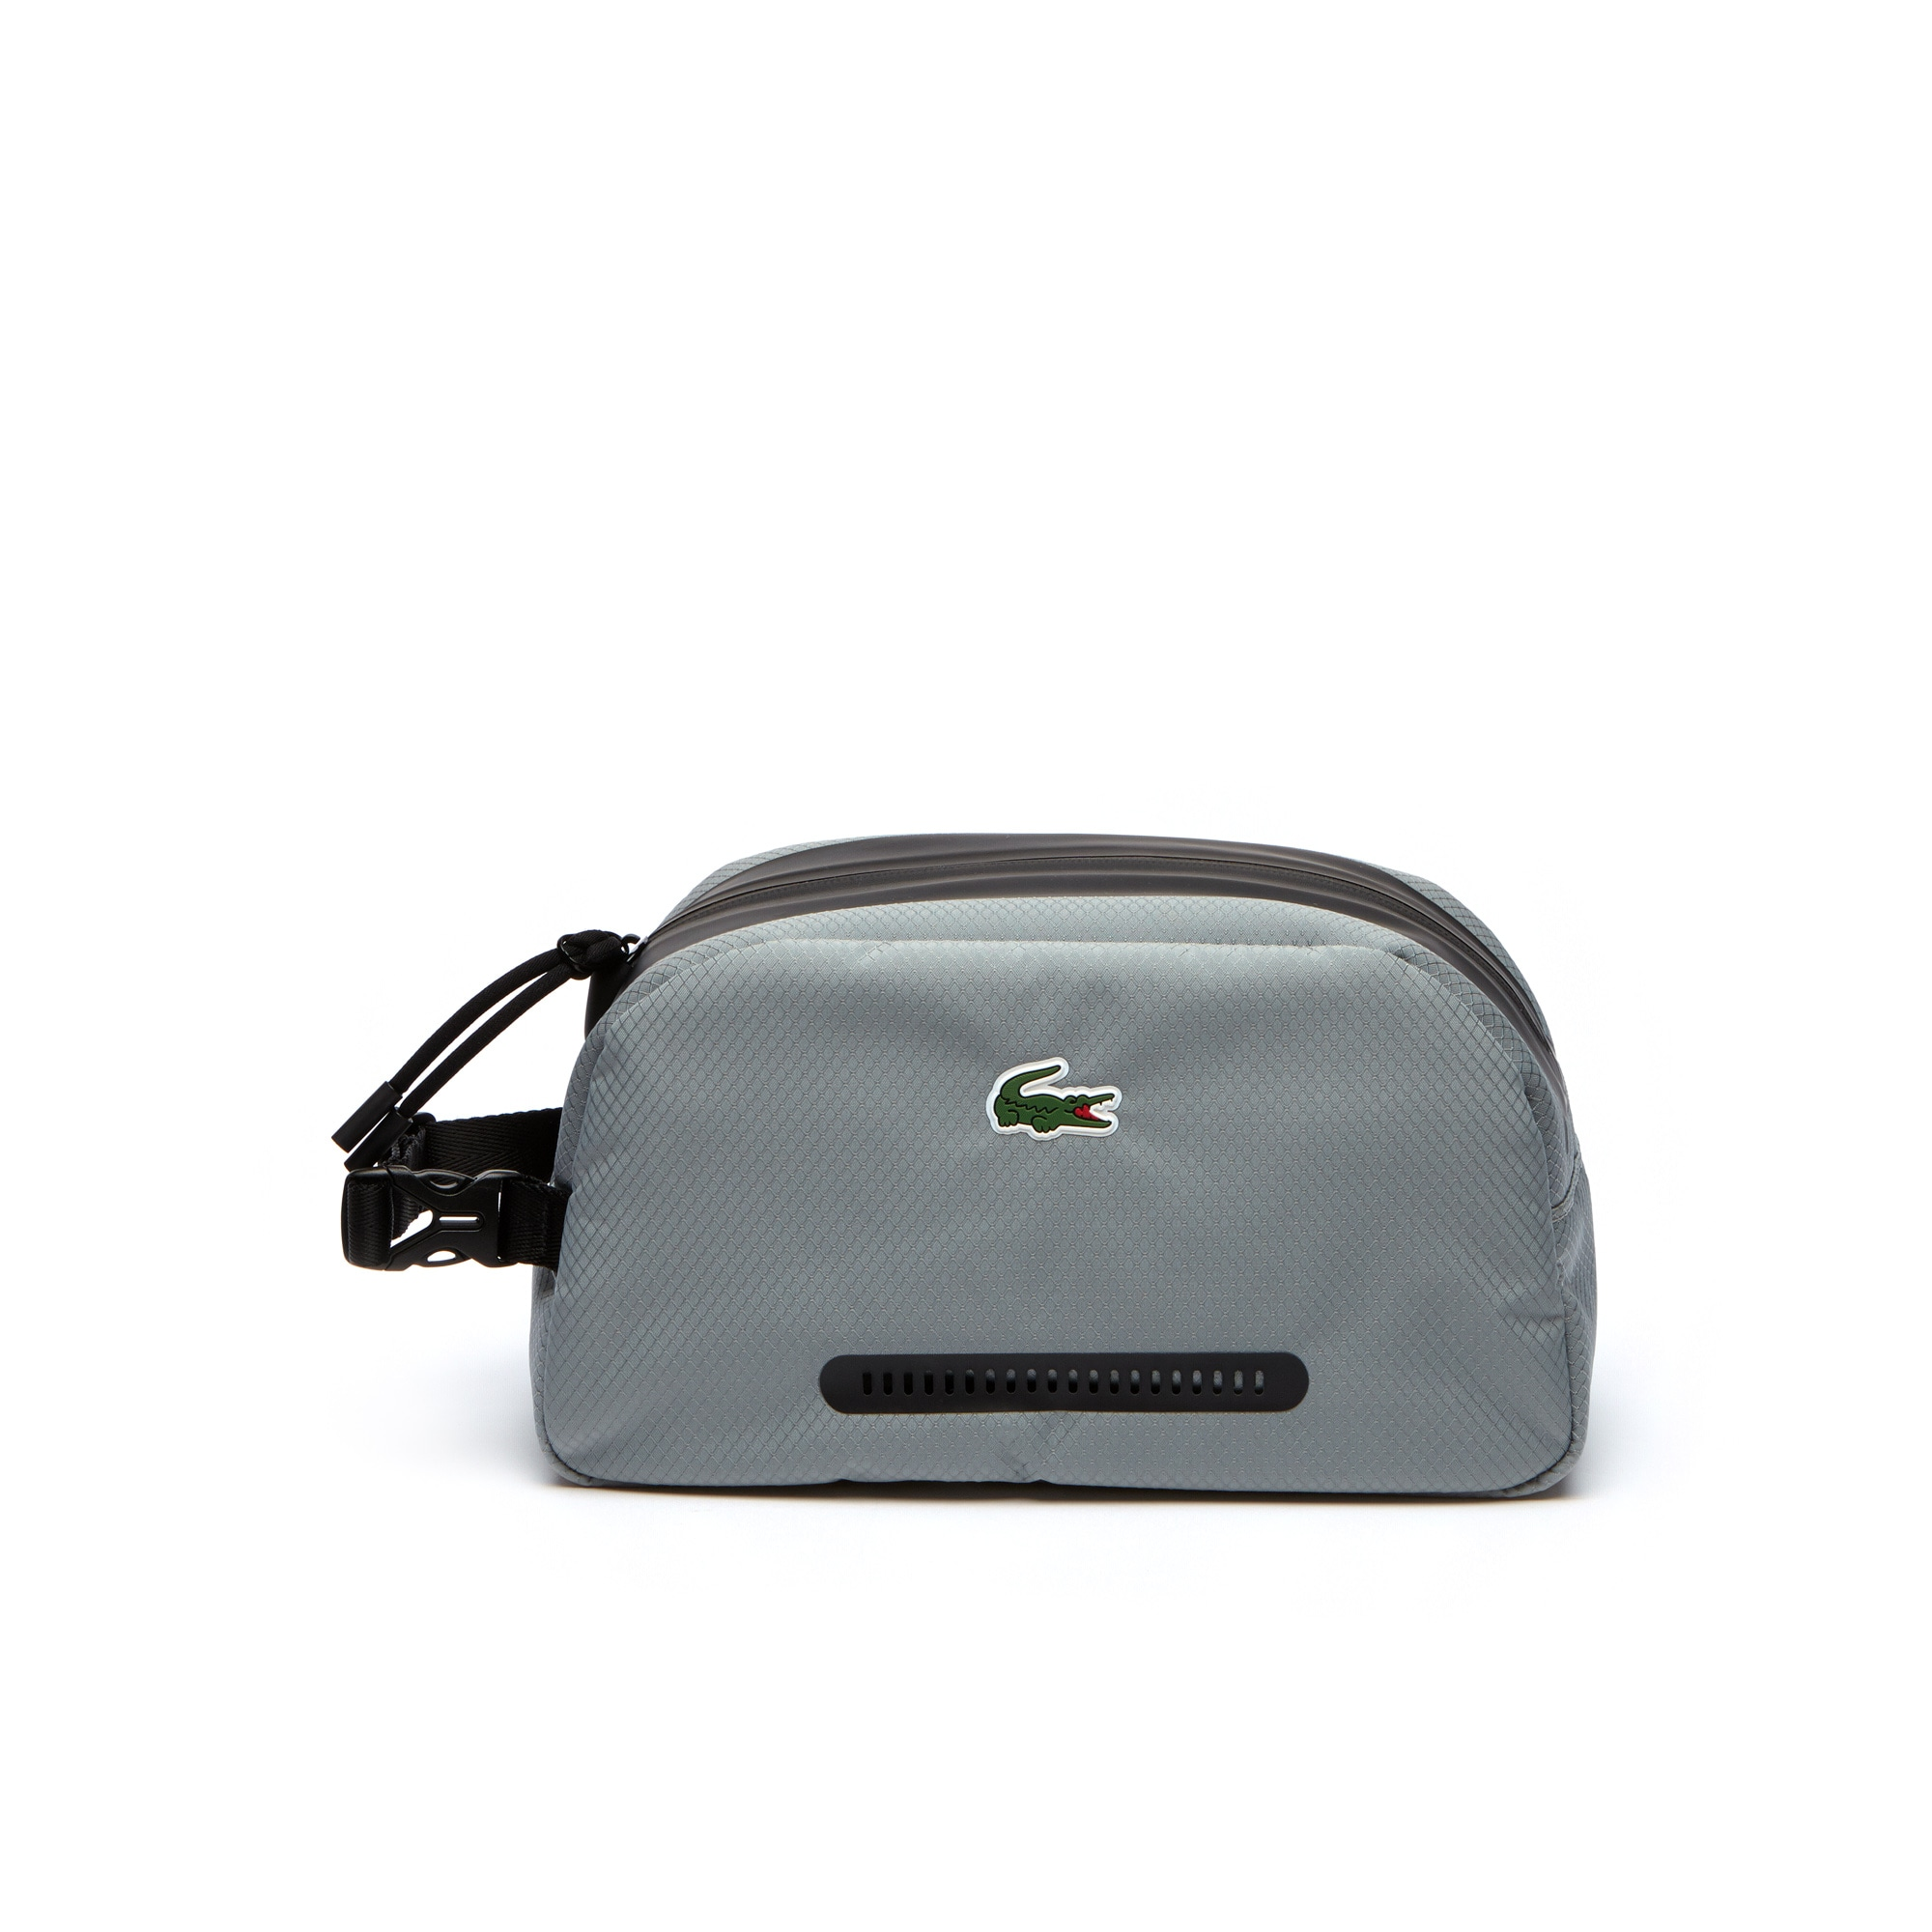 Trousse de toilette Lacoste SPORT Match Point en nylon